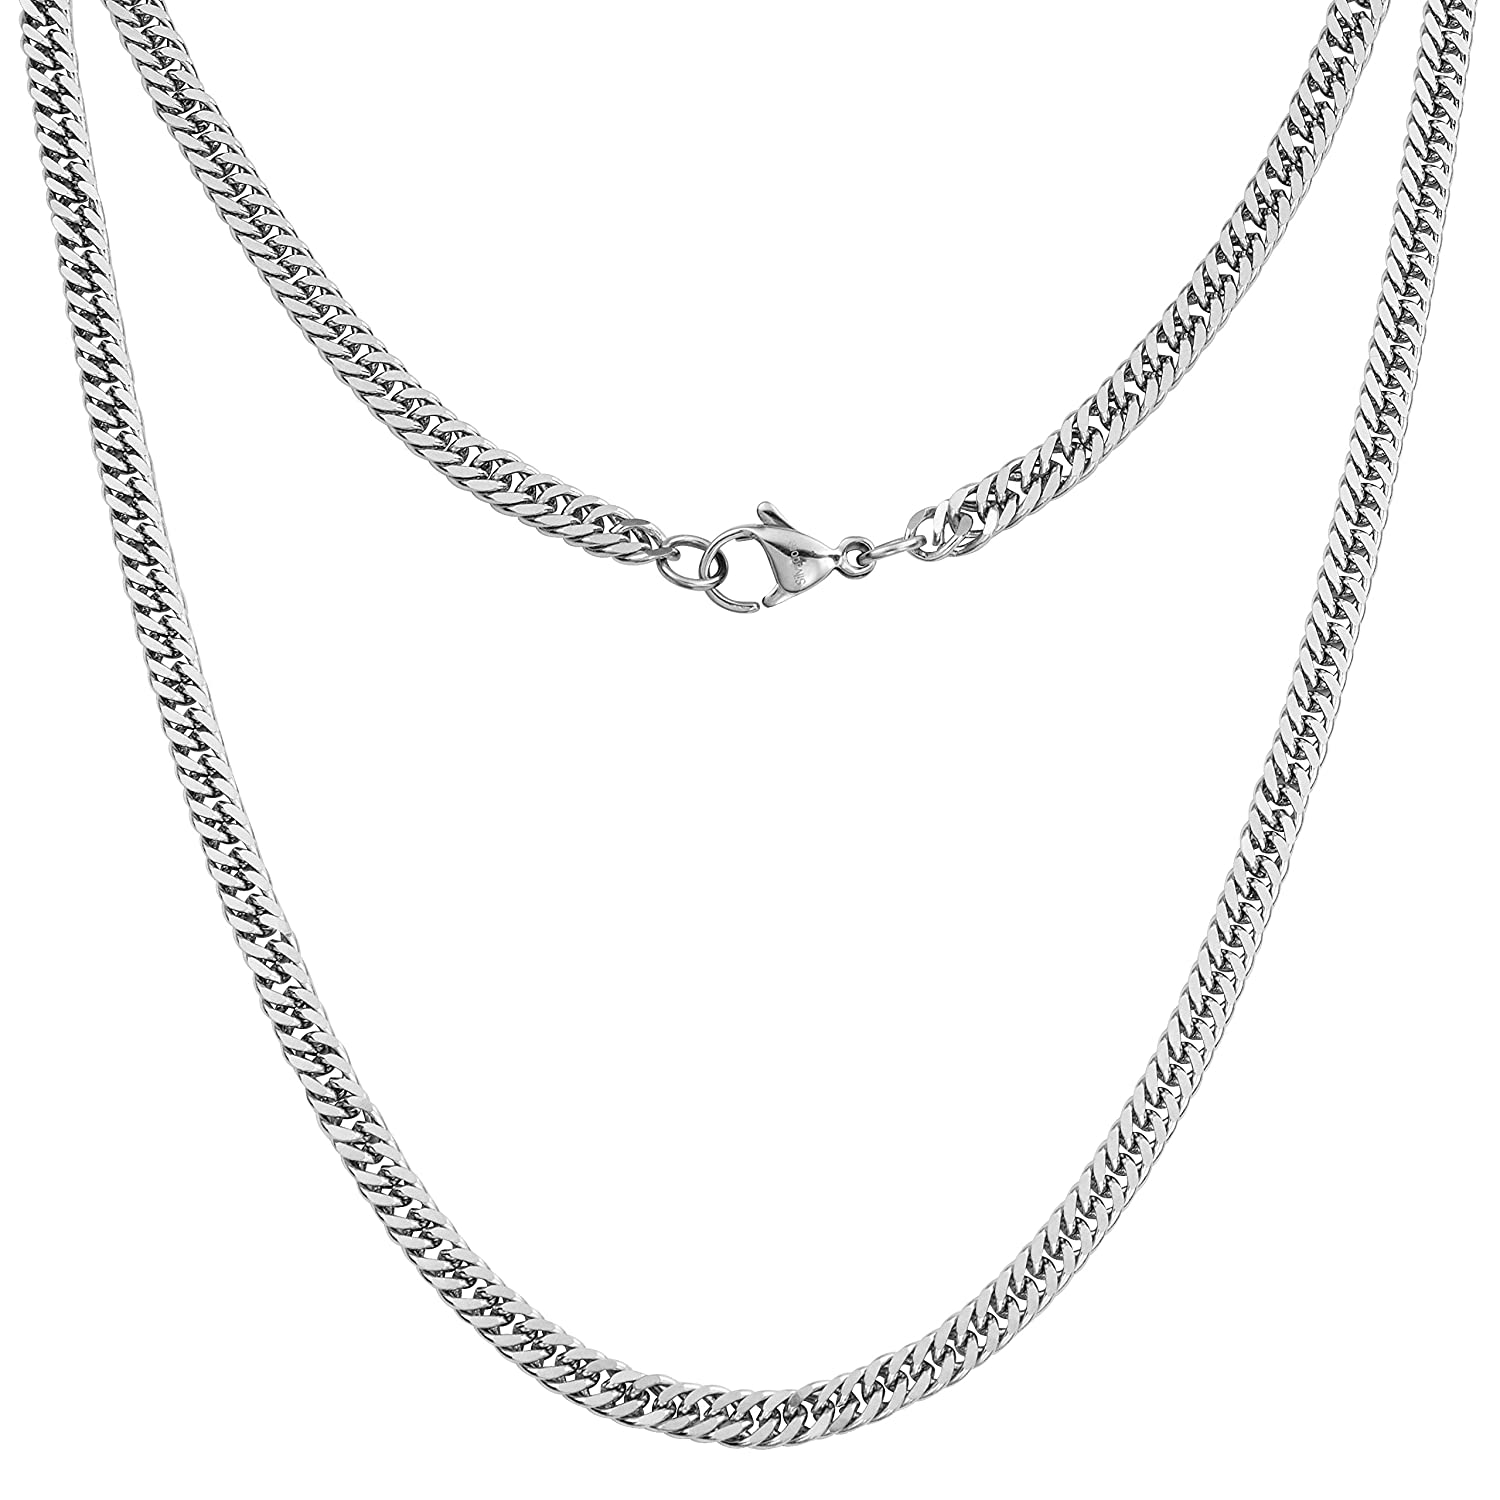 7075cafc789dd5 Silvadore 4mm CURB Mens Necklace Silver Chain - Stainless Steel Jewellery -  Neck Link Chains for Men Man Women Boys Kids Girls - 14